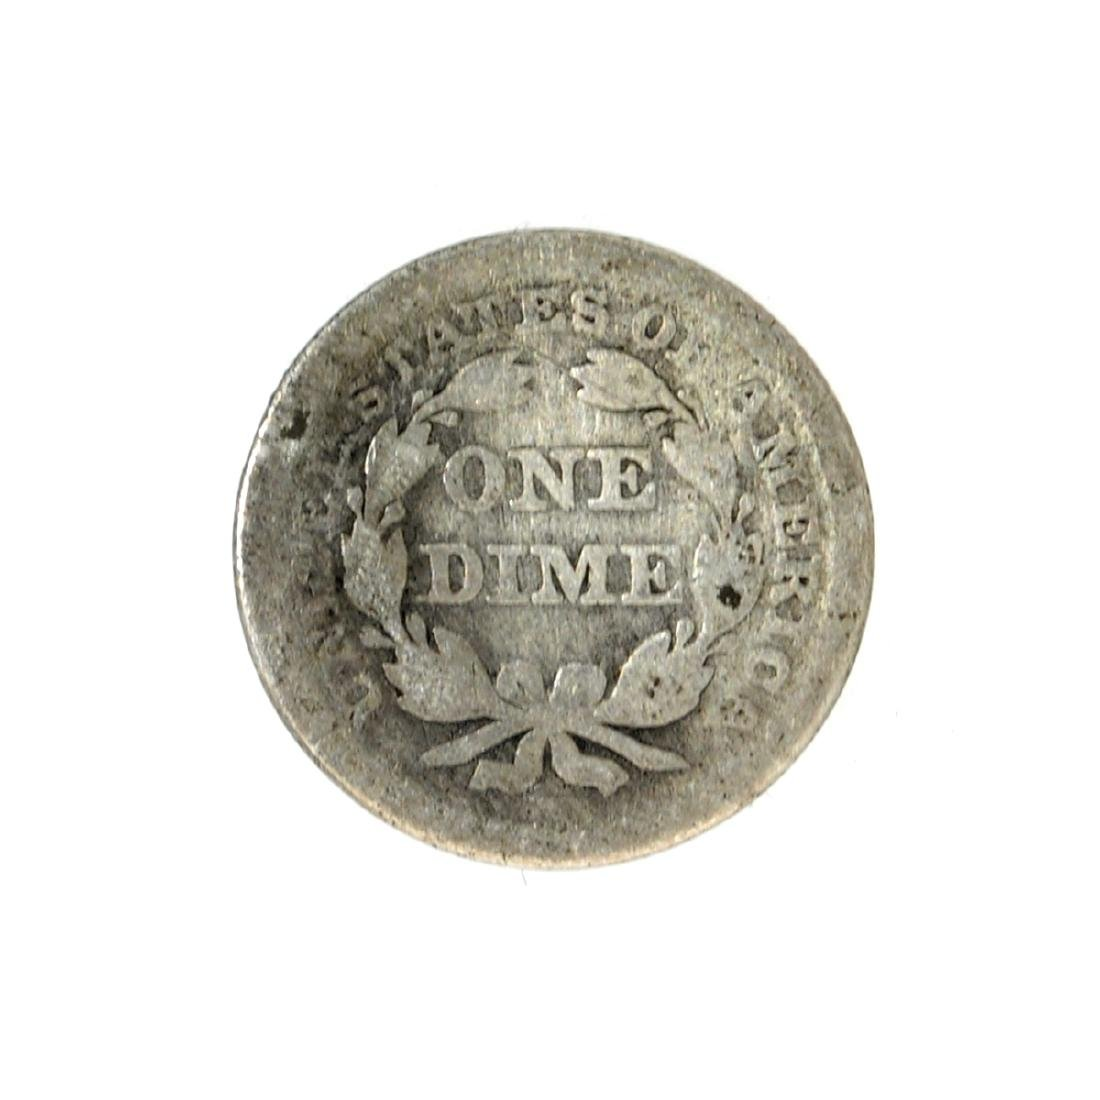 1854 Liberty Seated Arrows At Date Dime Coin - 2